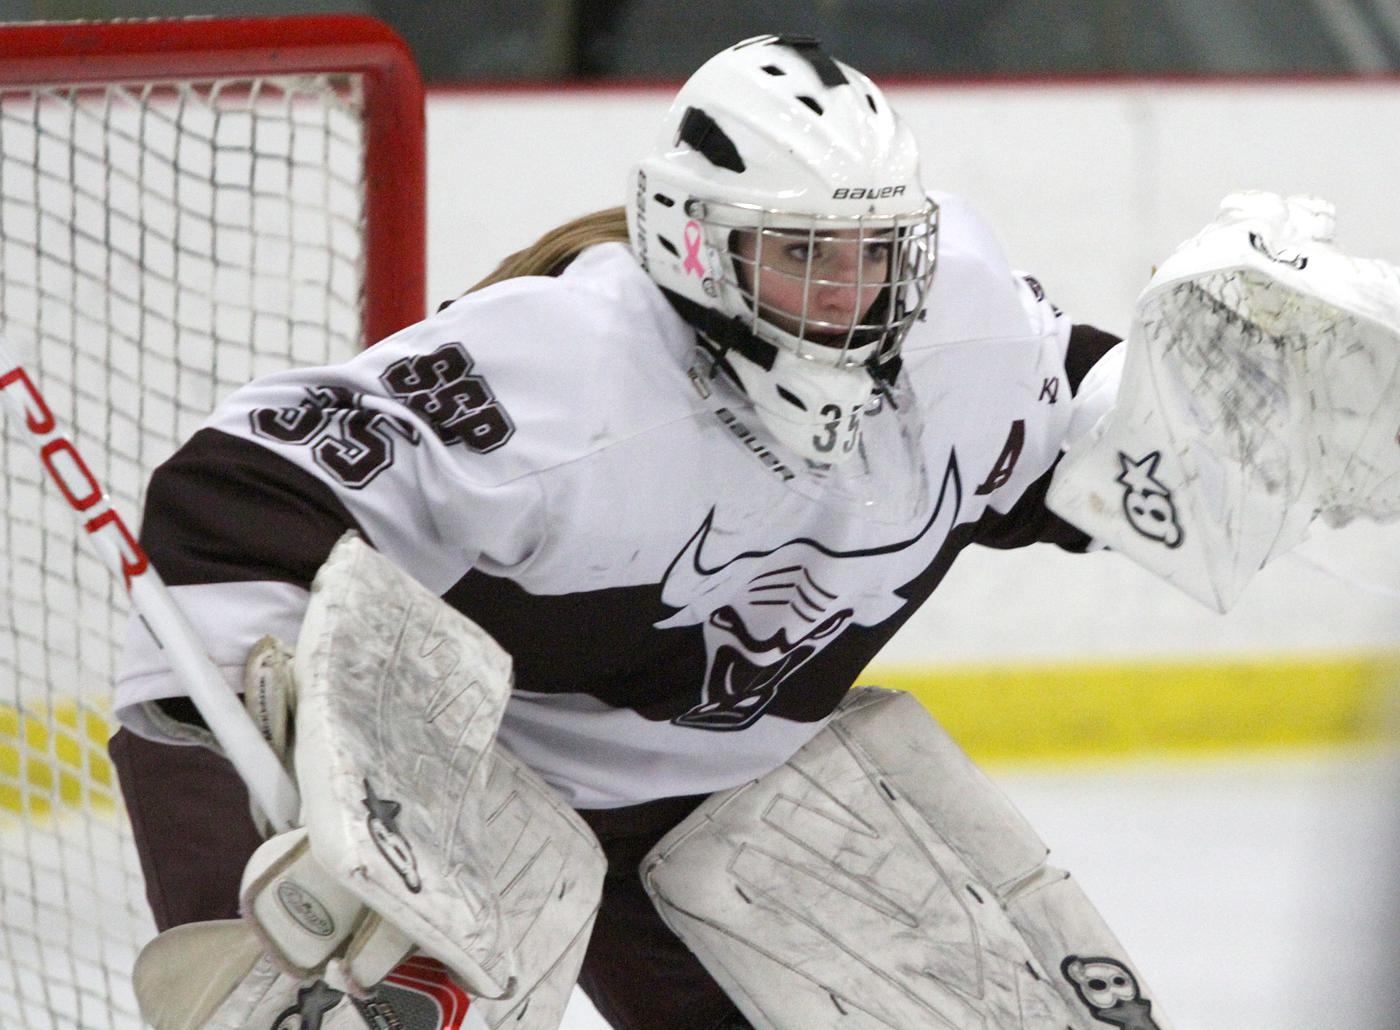 South St. Paul senior goaltender Kaity McKenzie stopped all 24 shots she faced to earn a shutout in the Packers' 2-0 win over Proctor/Hermantown Friday night at Doug Woog Arena. Photo by Drew Herron, SportsEngine